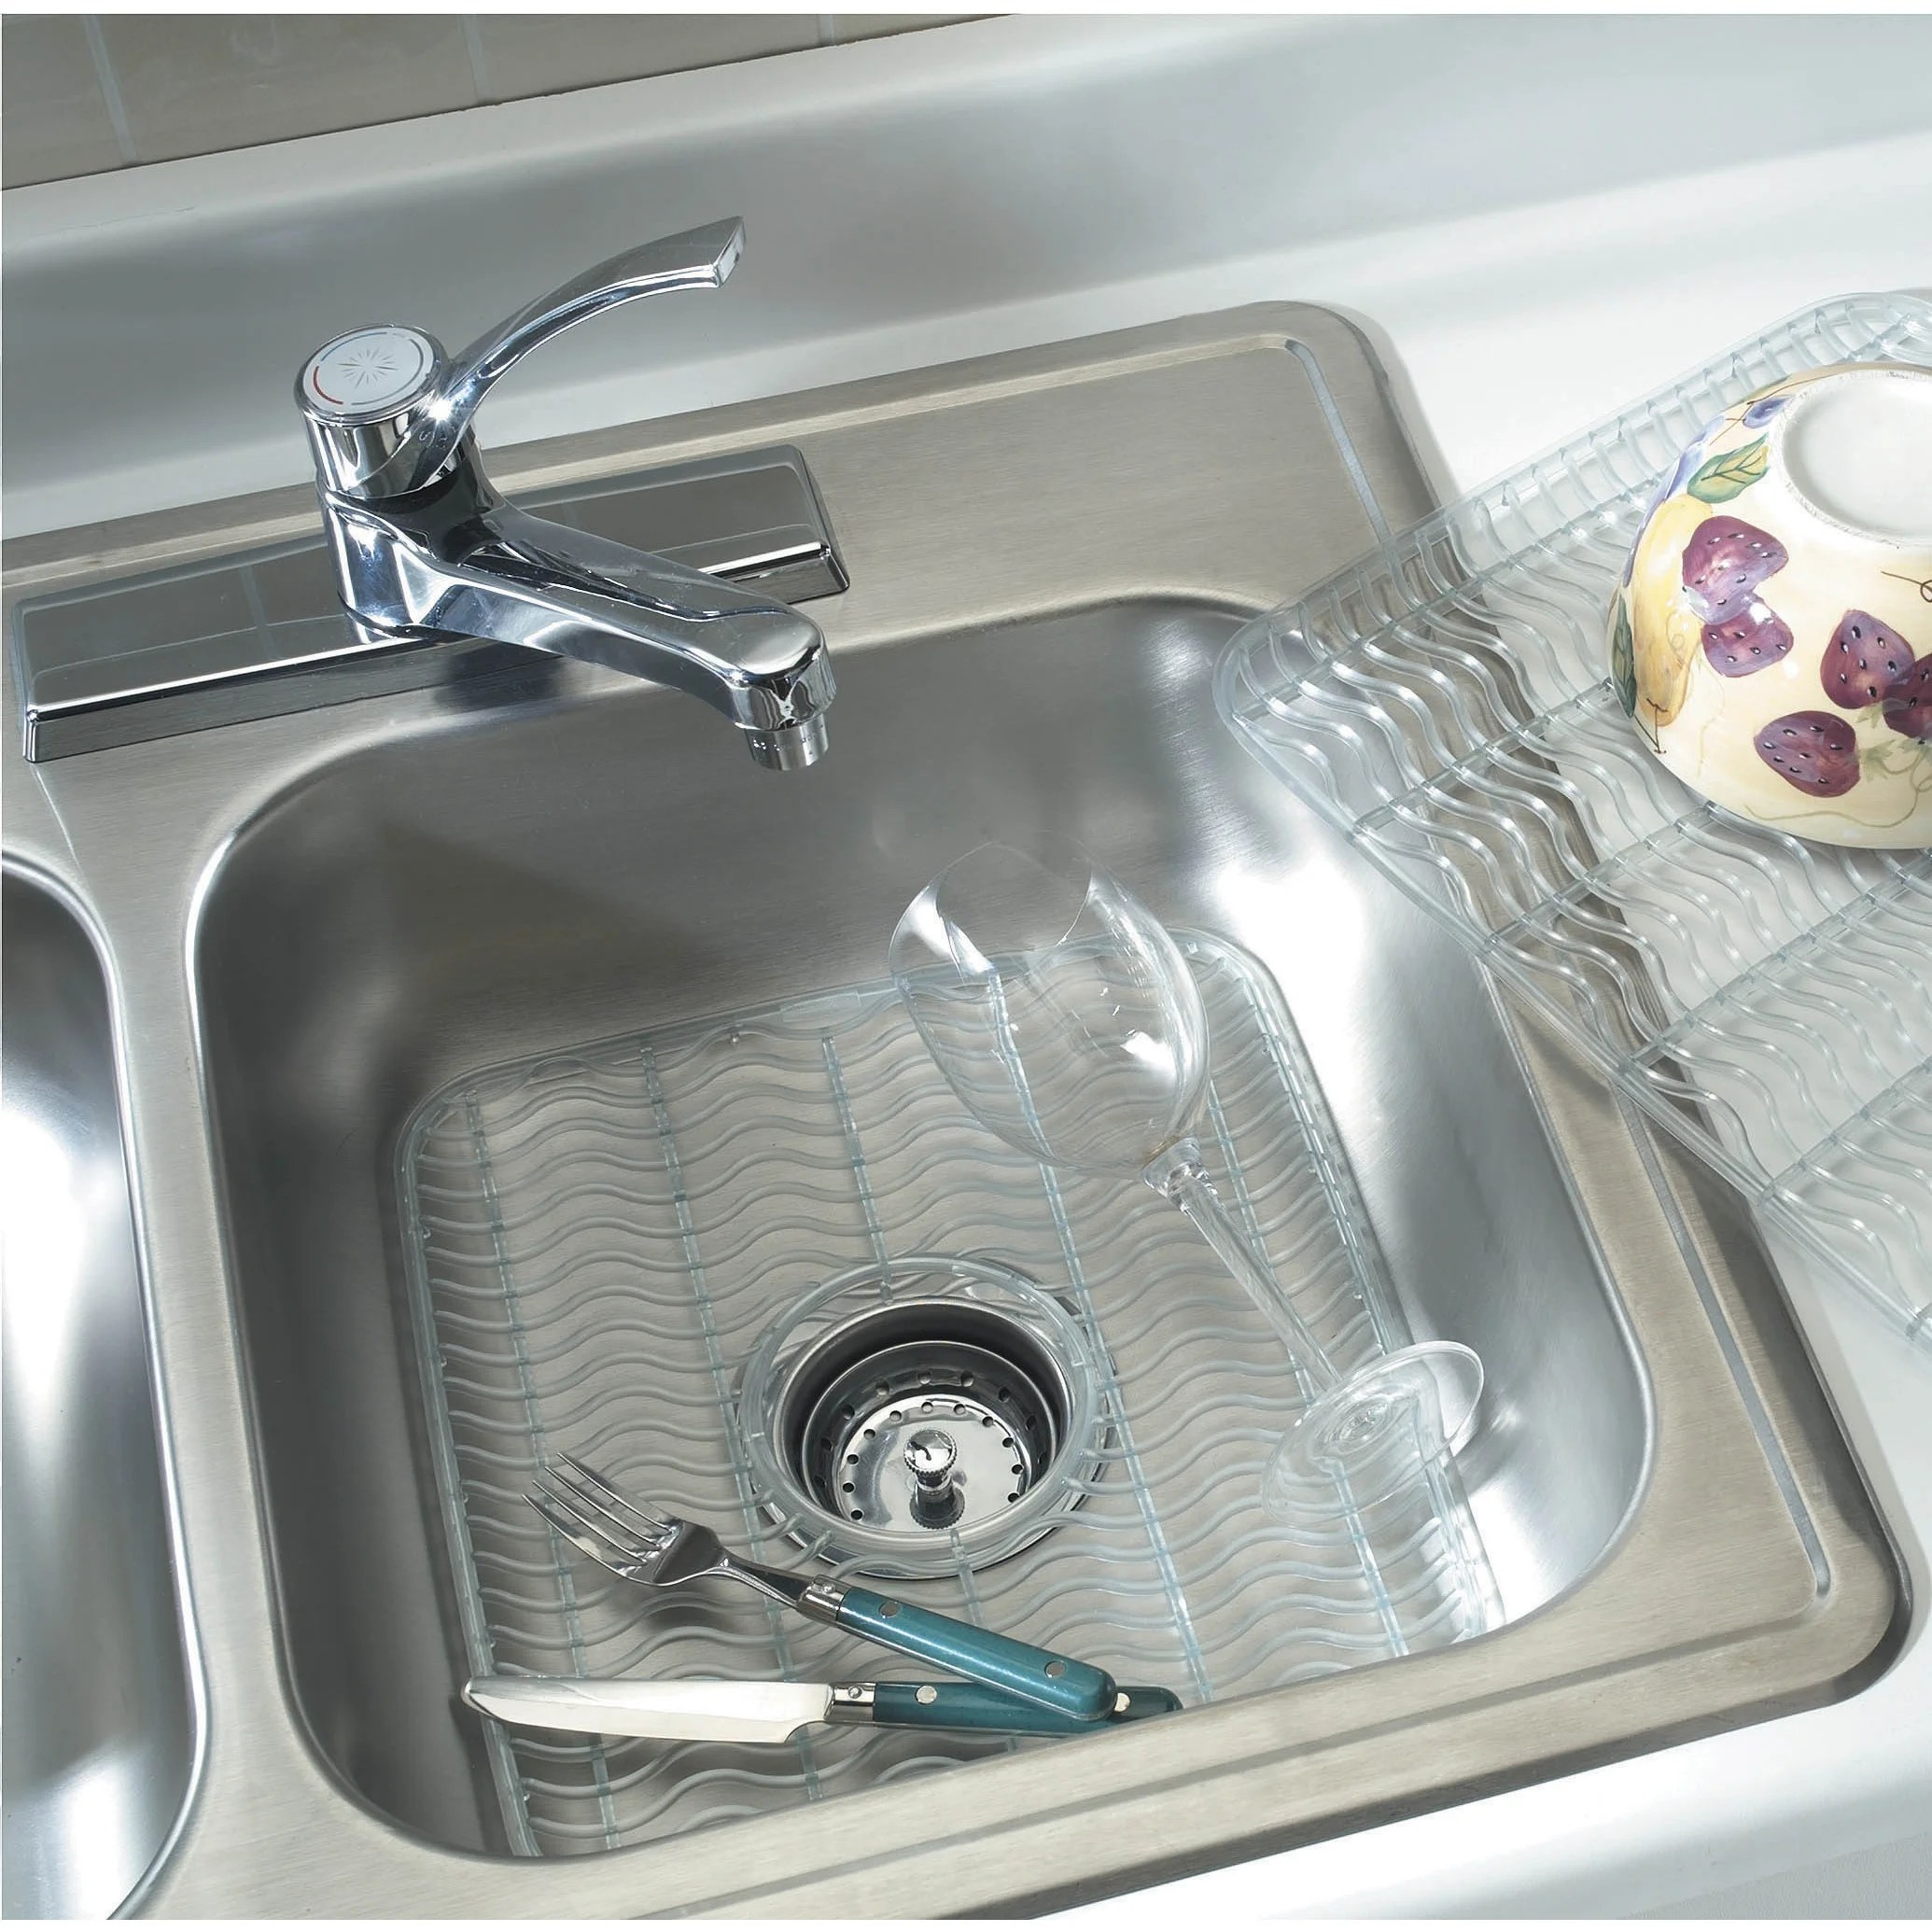 Rubbermaid 129506clr Sink Protector On Sale Overstock 12438150